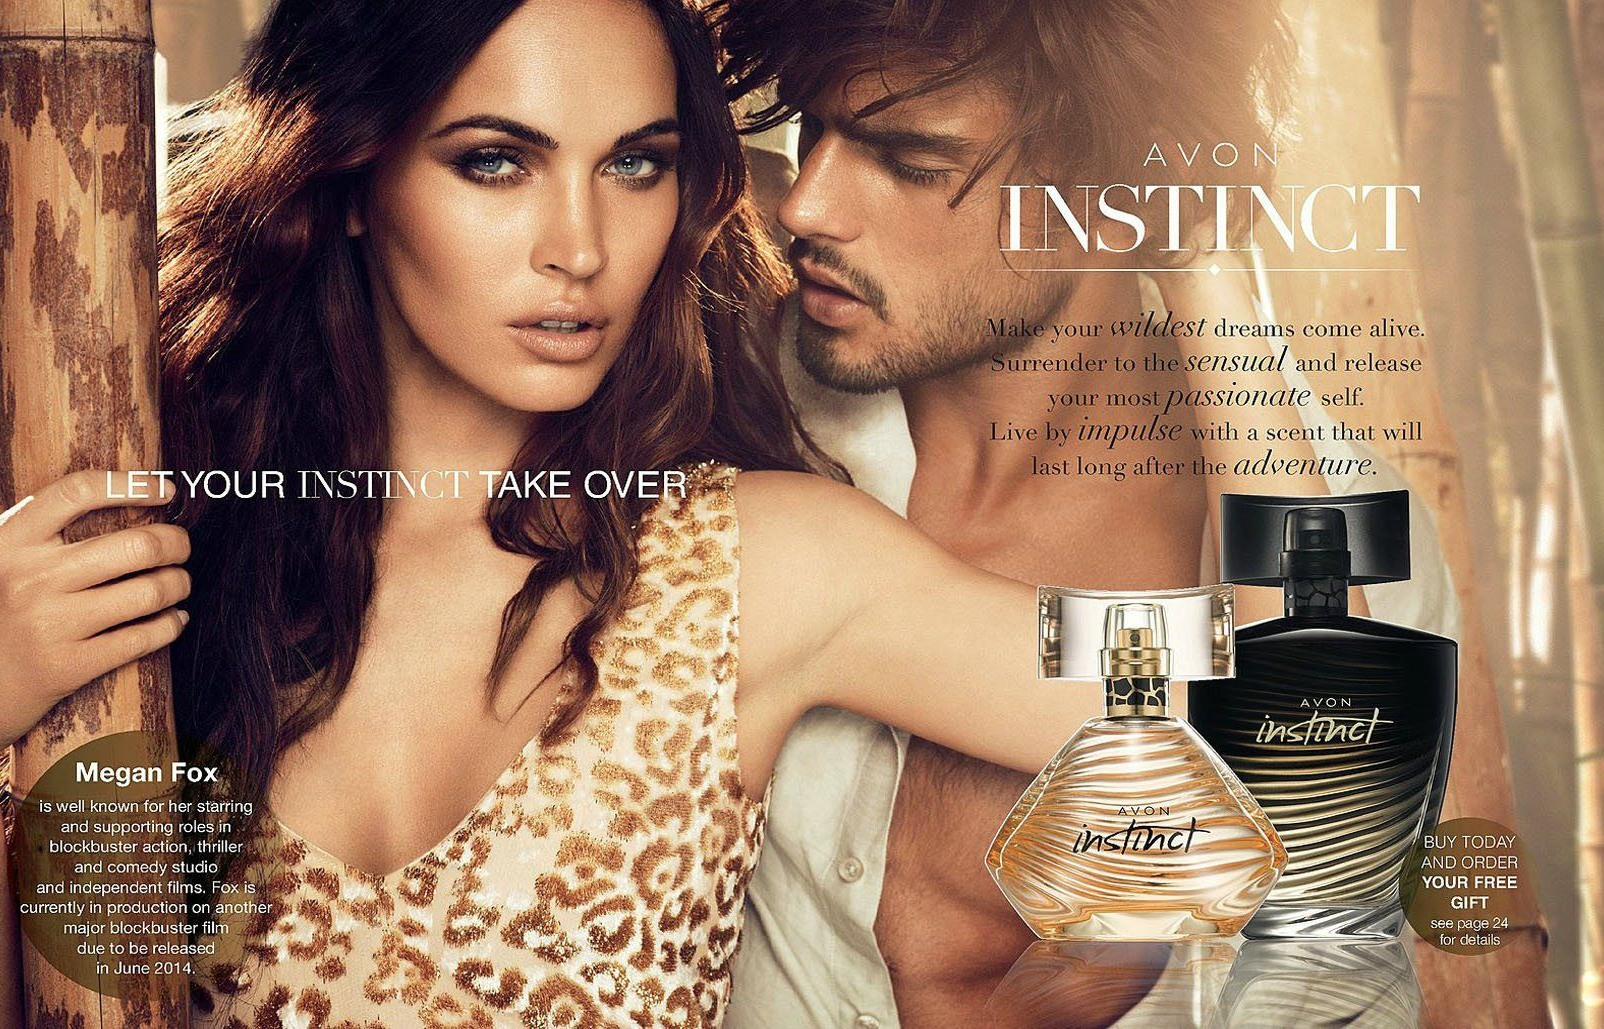 Marlon Teixeira Appears in Avon's Instinct Fragrance Campaign